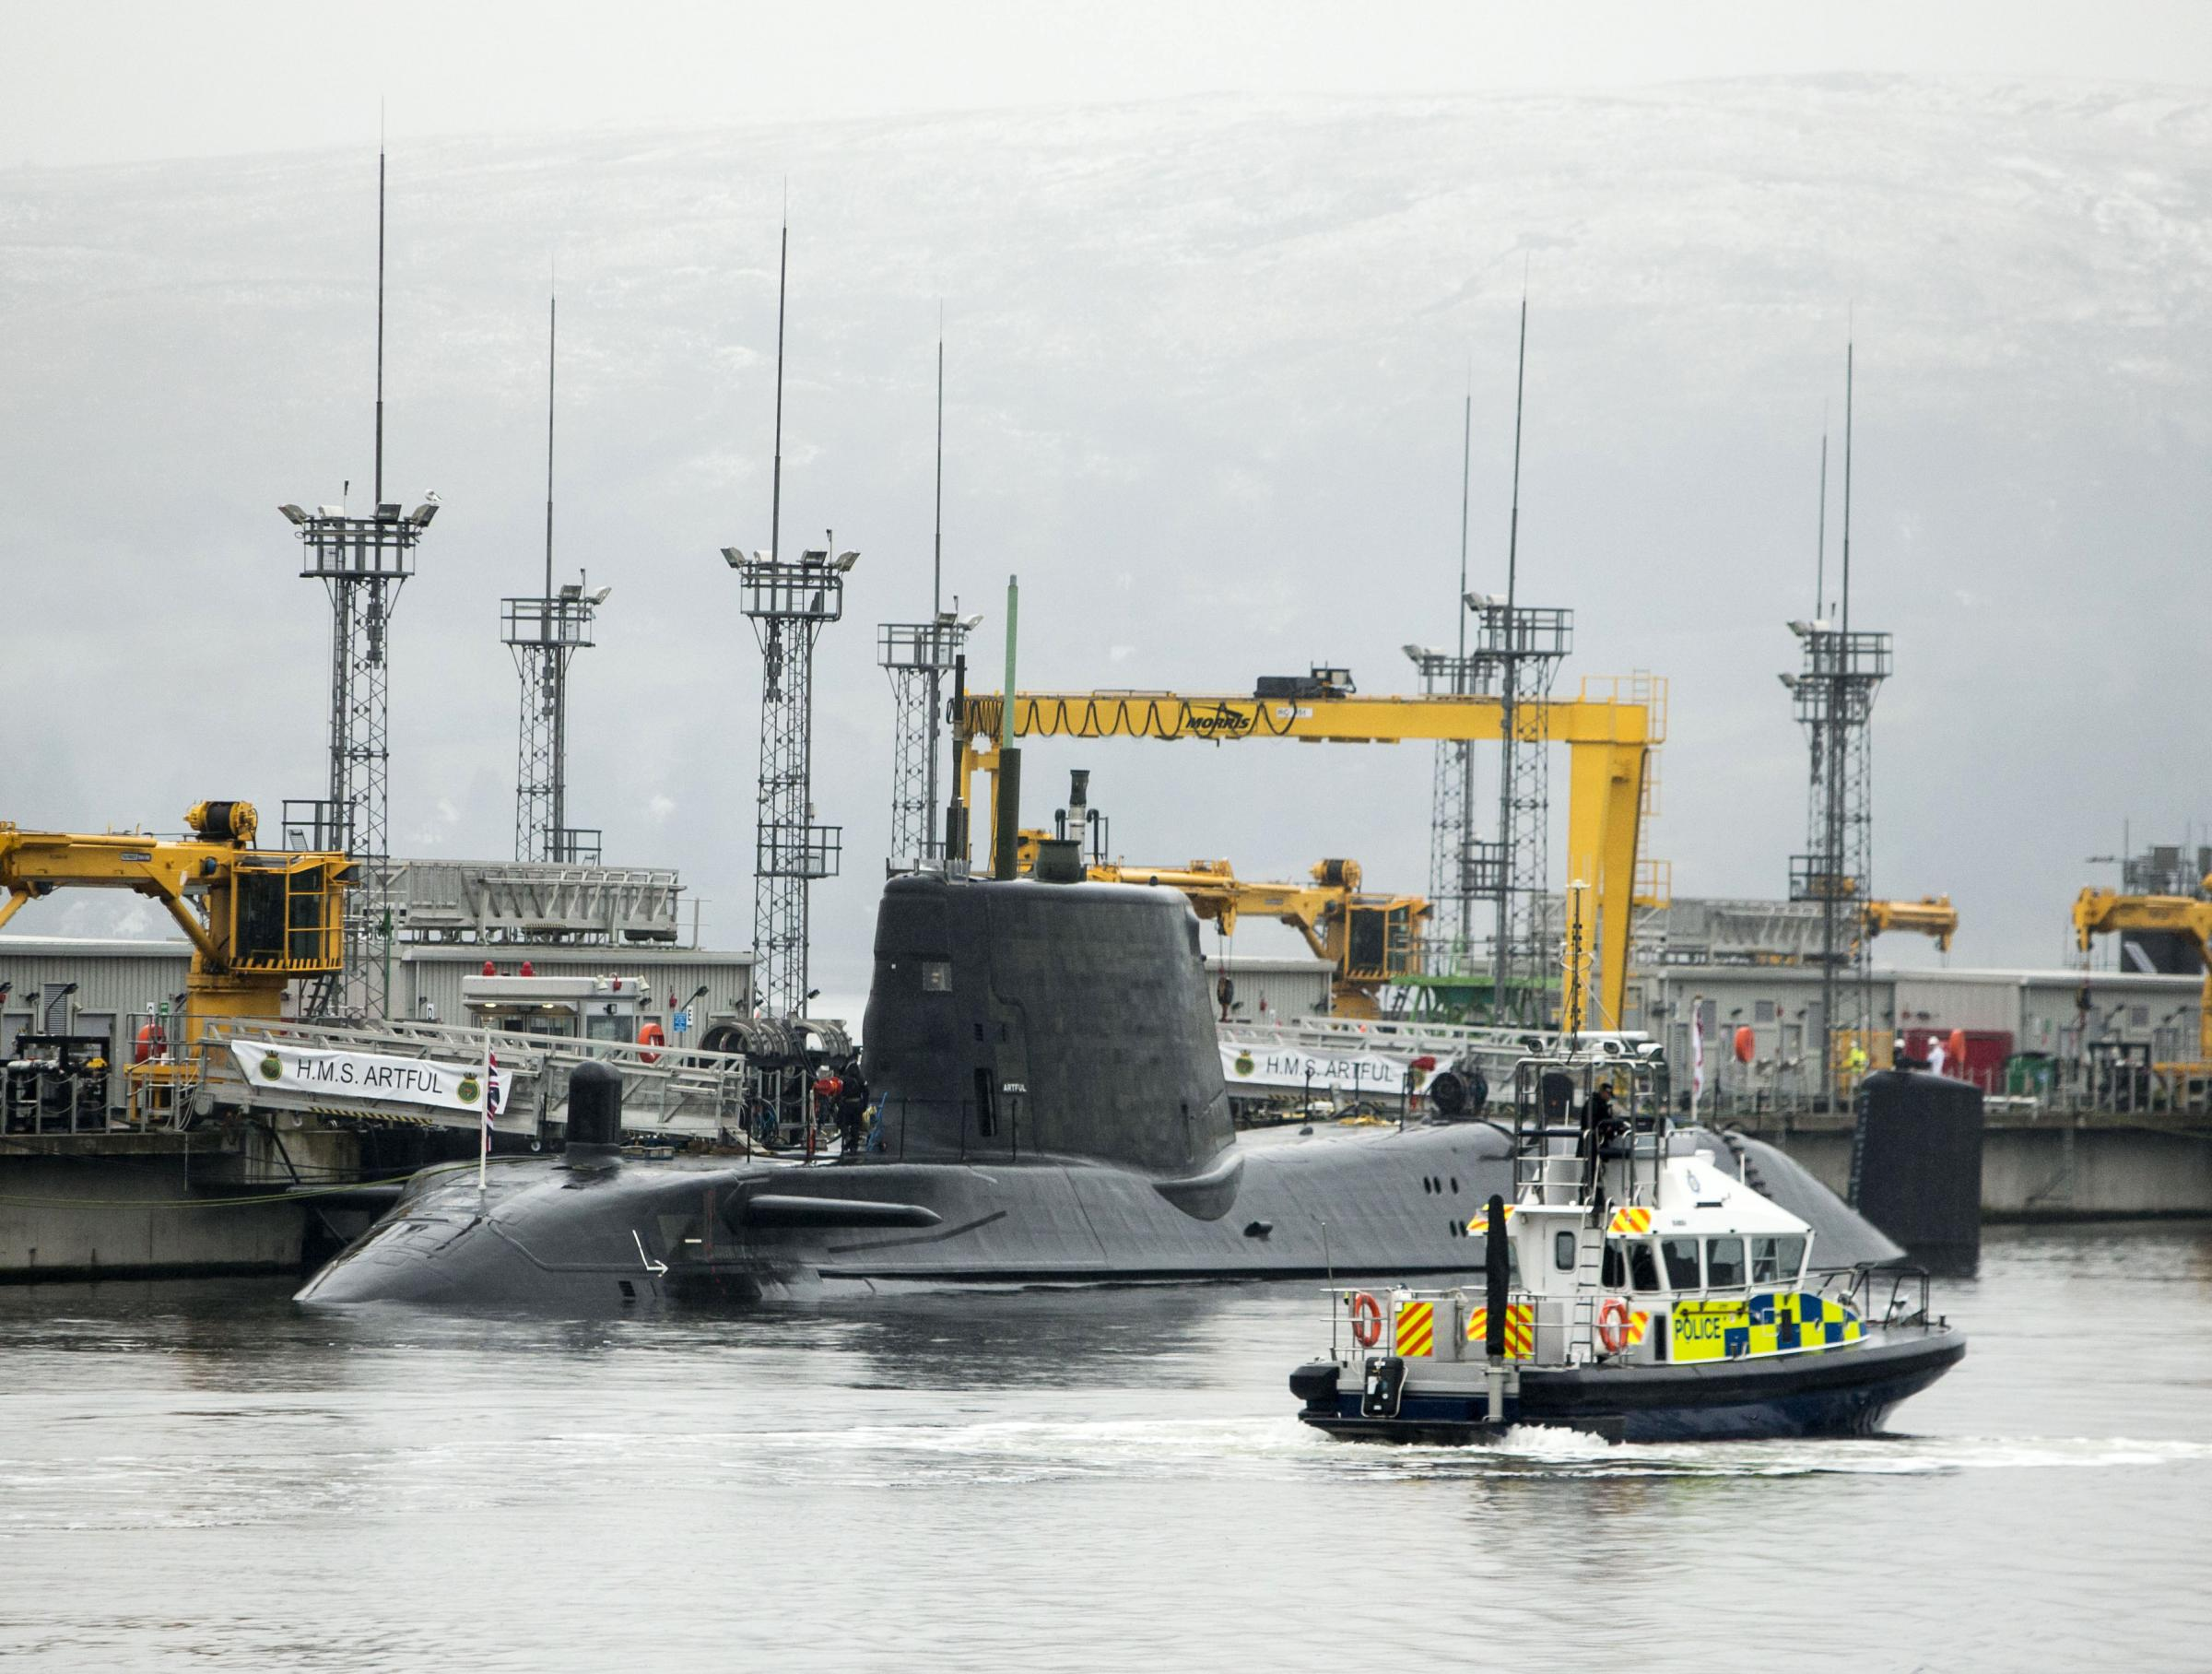 New roadmap to finally kick Trident out of an independent Scotland